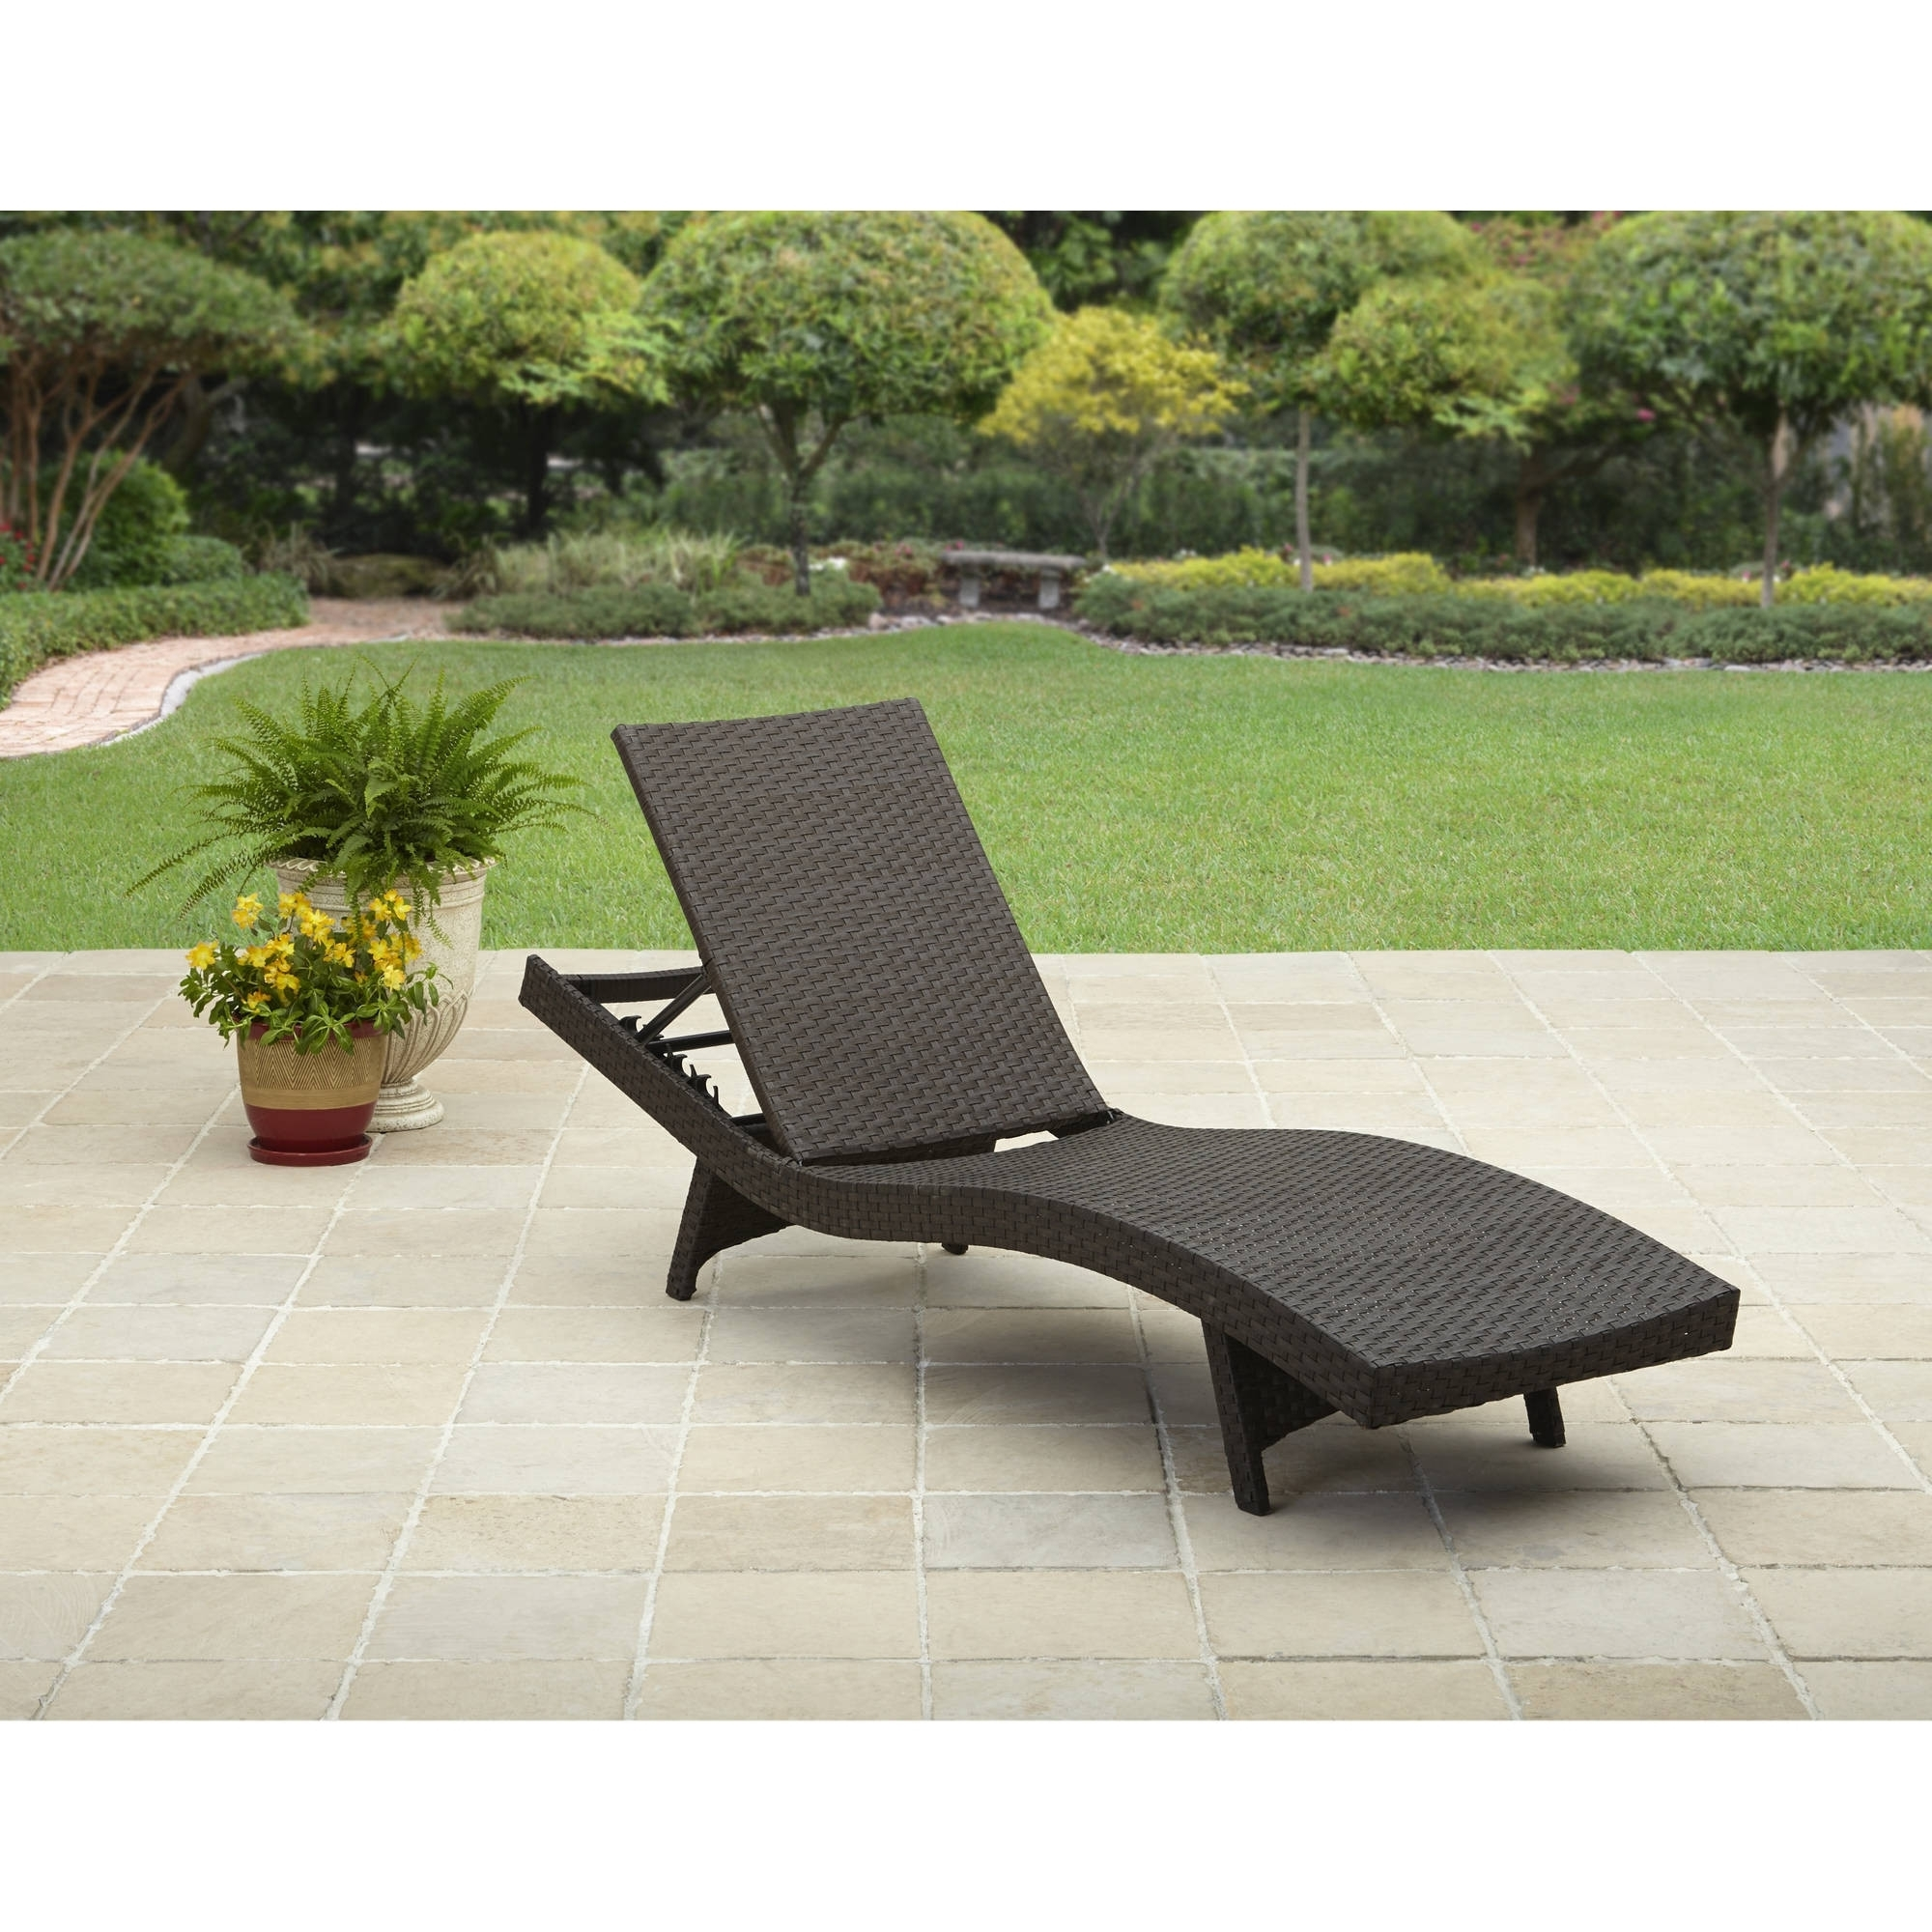 Widely Used Green Resin Chaise Lounge Chairs Inside Convertible Chair : Outdoor Chaise Lounge Chairs Clearance Outdoor (View 15 of 15)